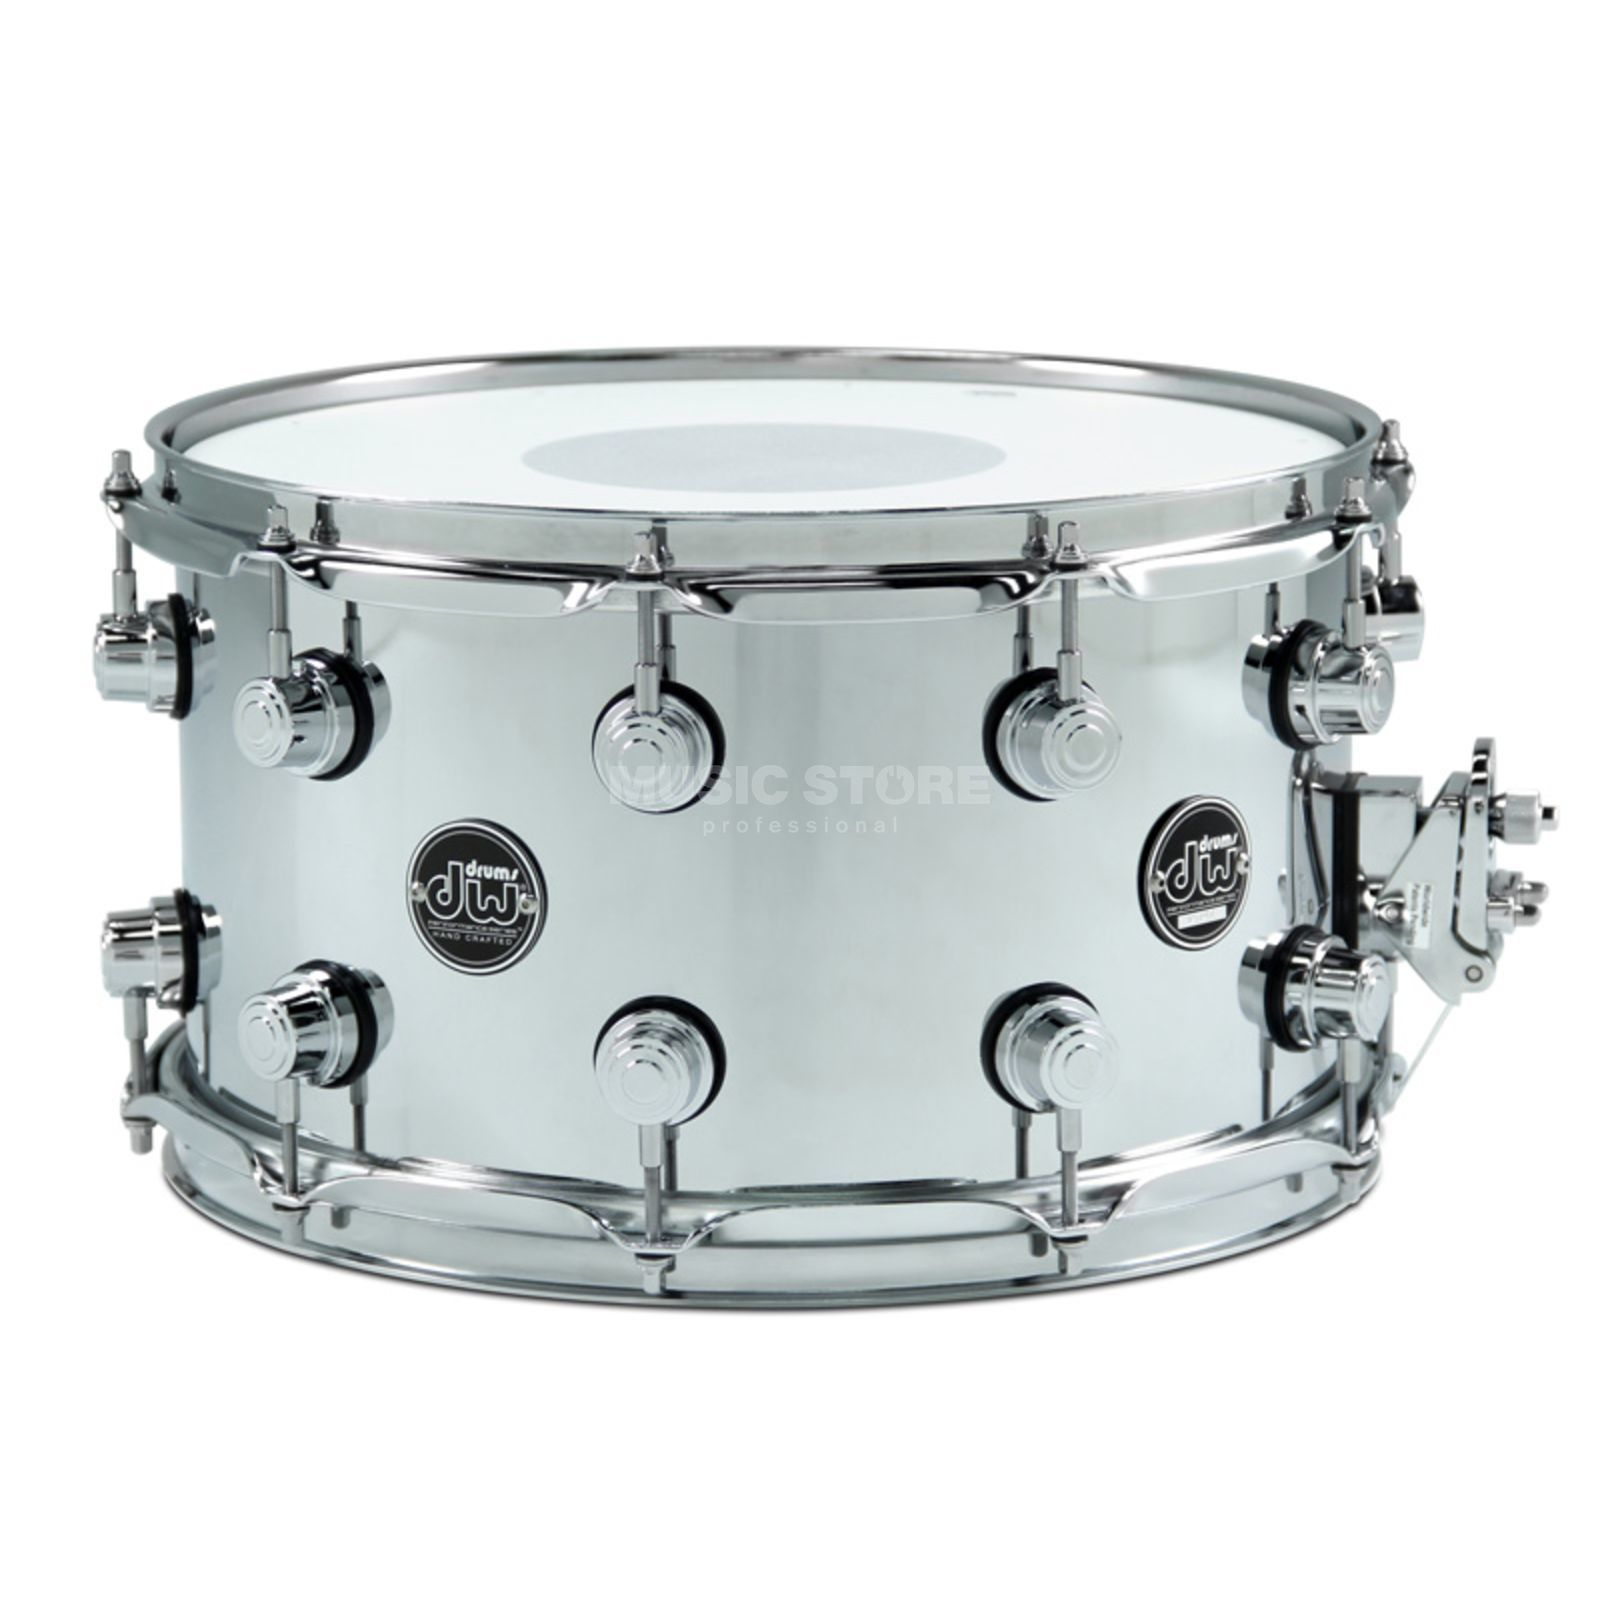 "Drum Workshop Performance Snare Stahl, 14""x8"" Produktbild"